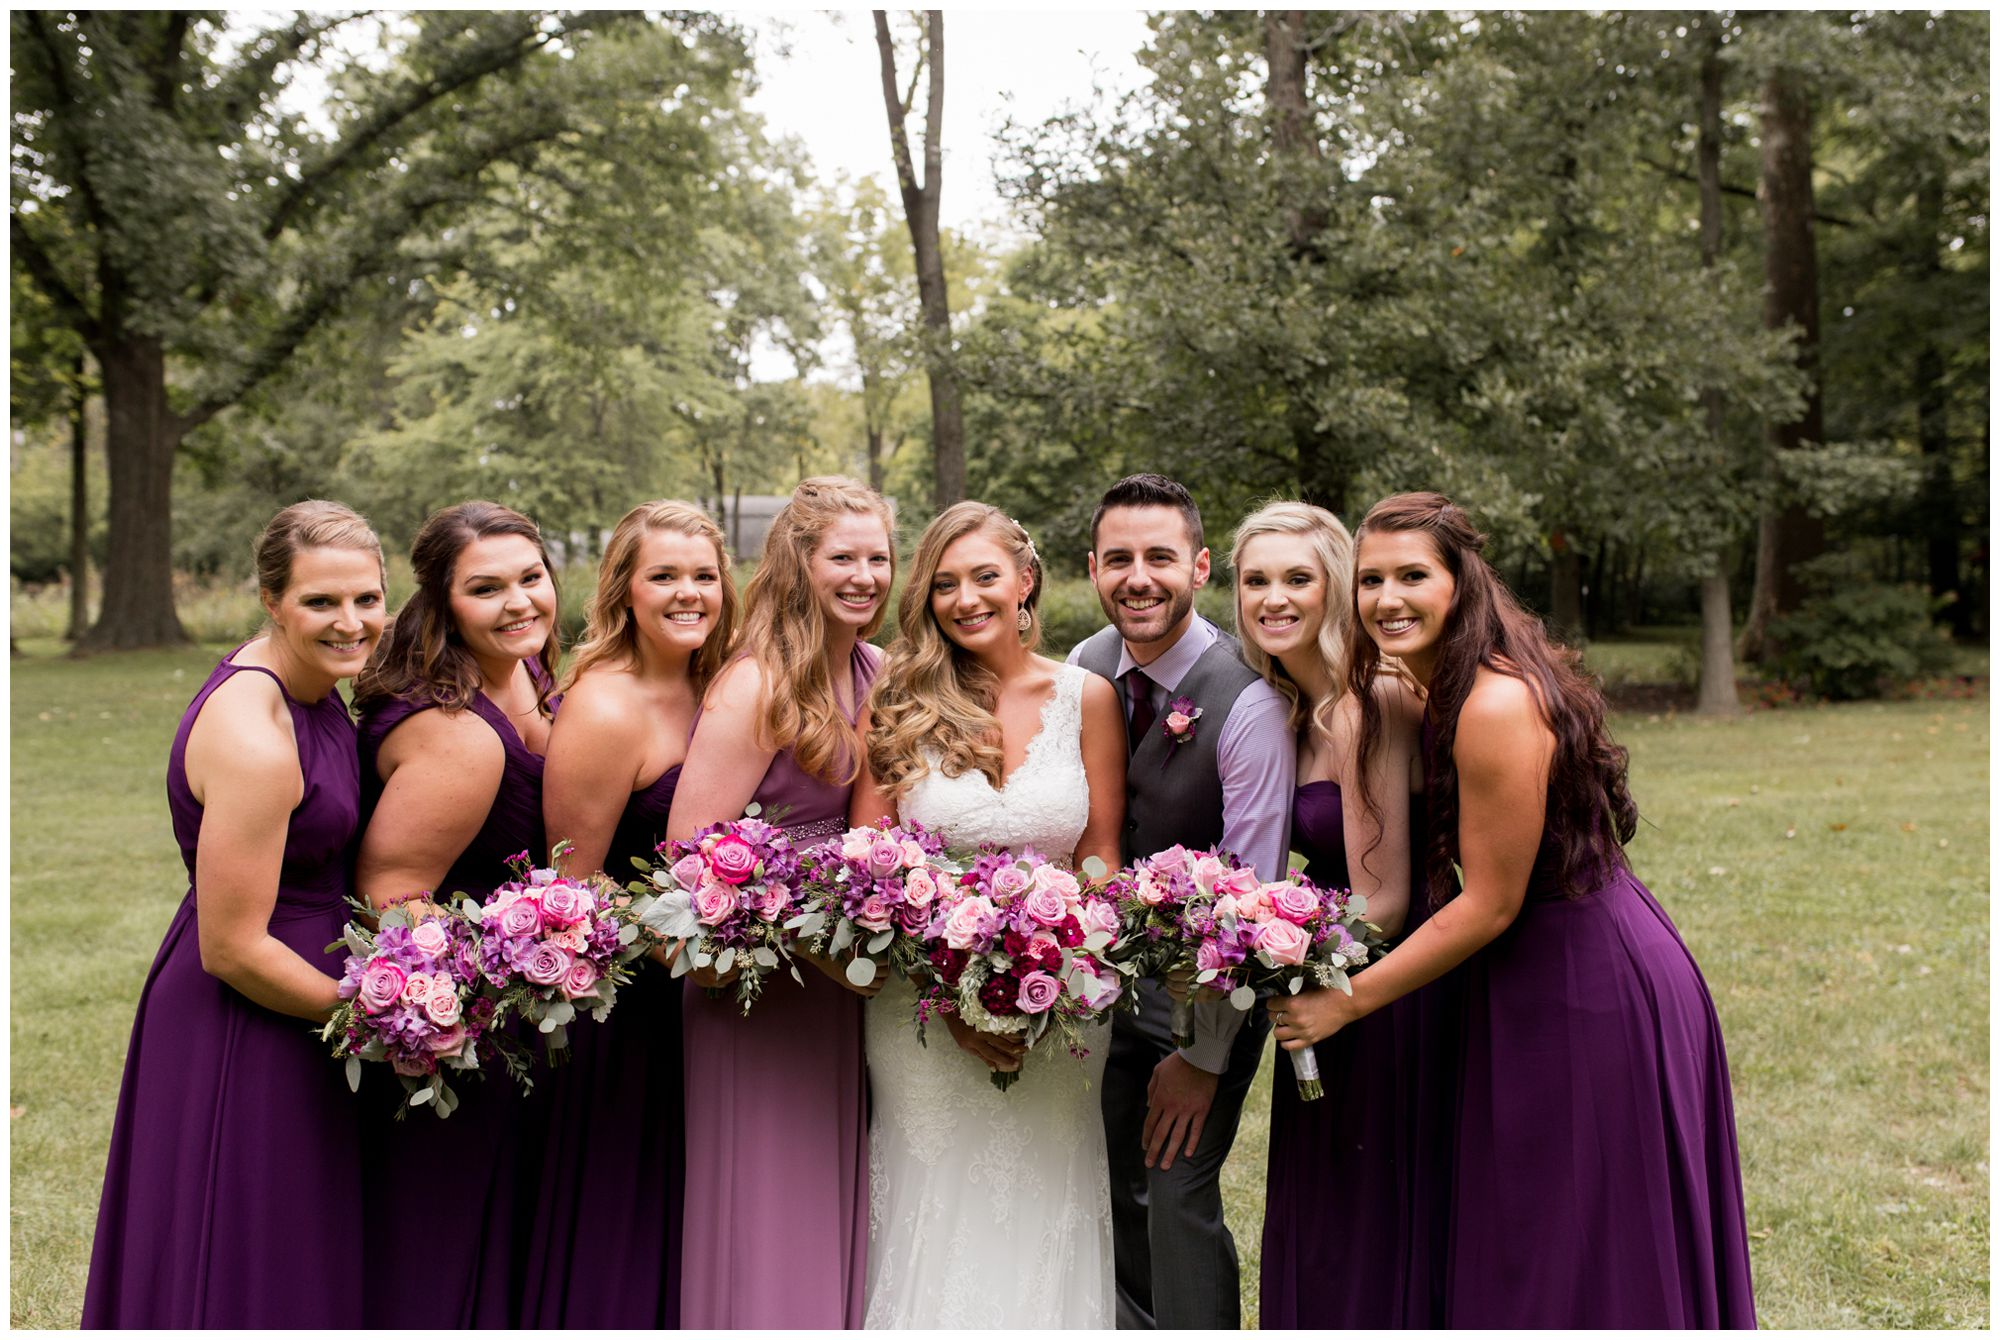 bridal party photos during Wabash wedding photography at Charley Creek Gardens